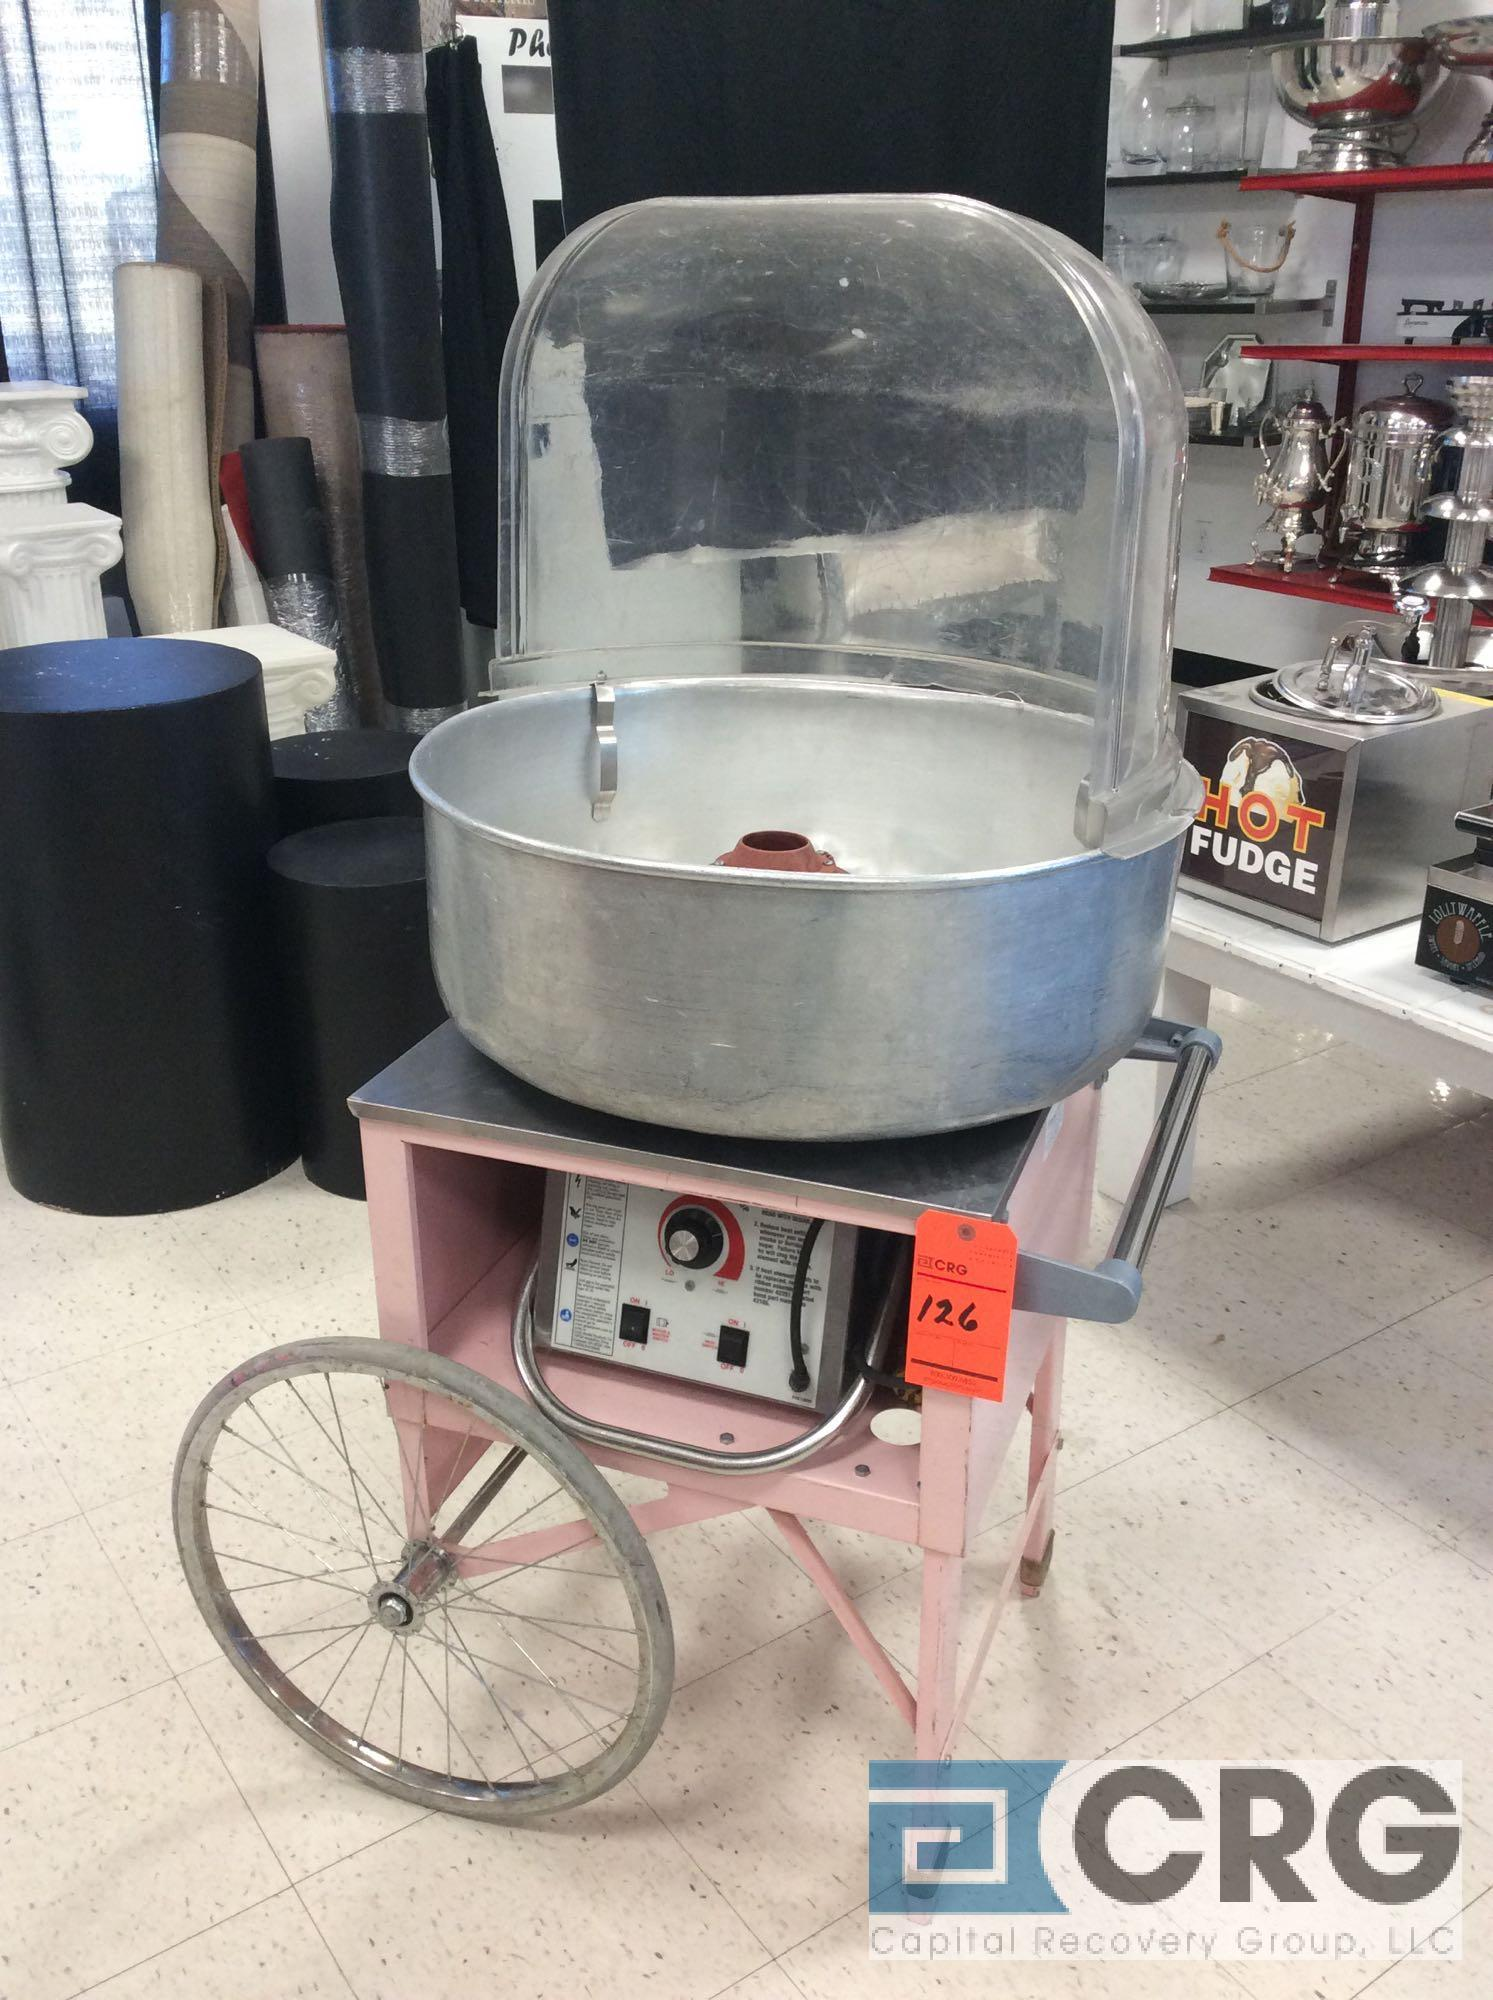 Econo Floss 3017SR cotton candy machine with portable cart